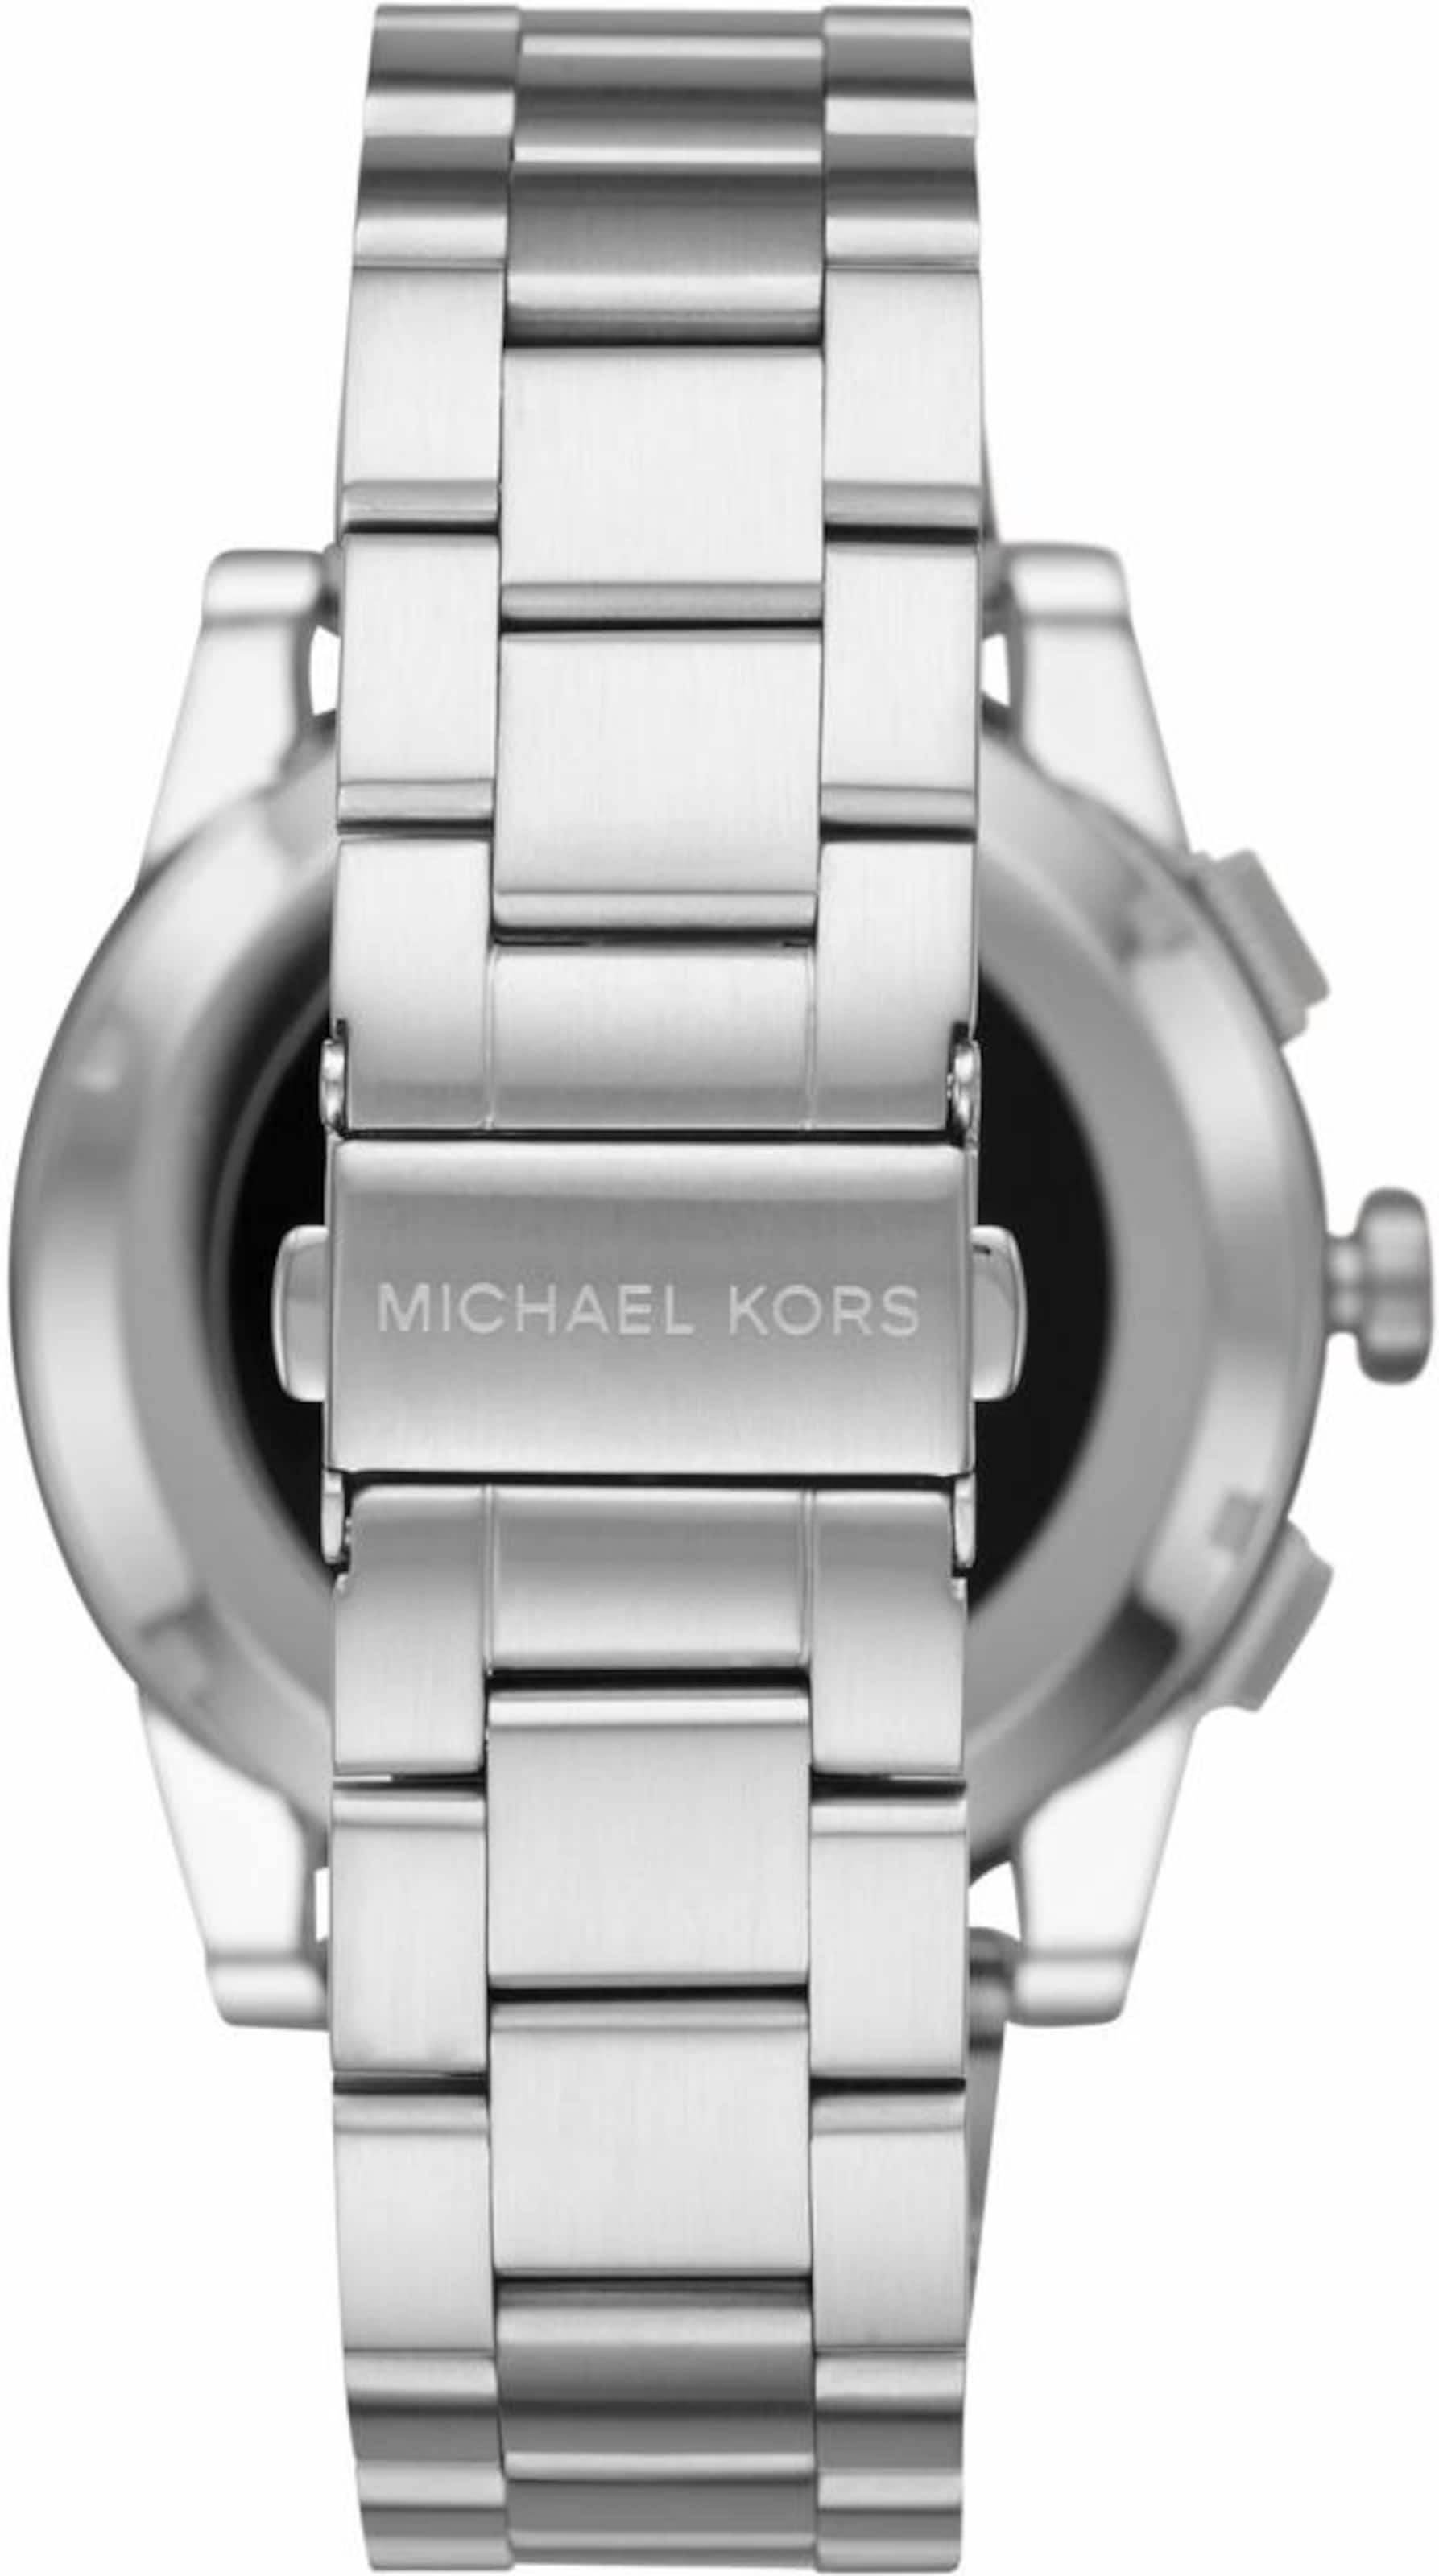 Michael Kors ACCESS GRAYSON, MKT5025 Smartwatch (Android Wear)